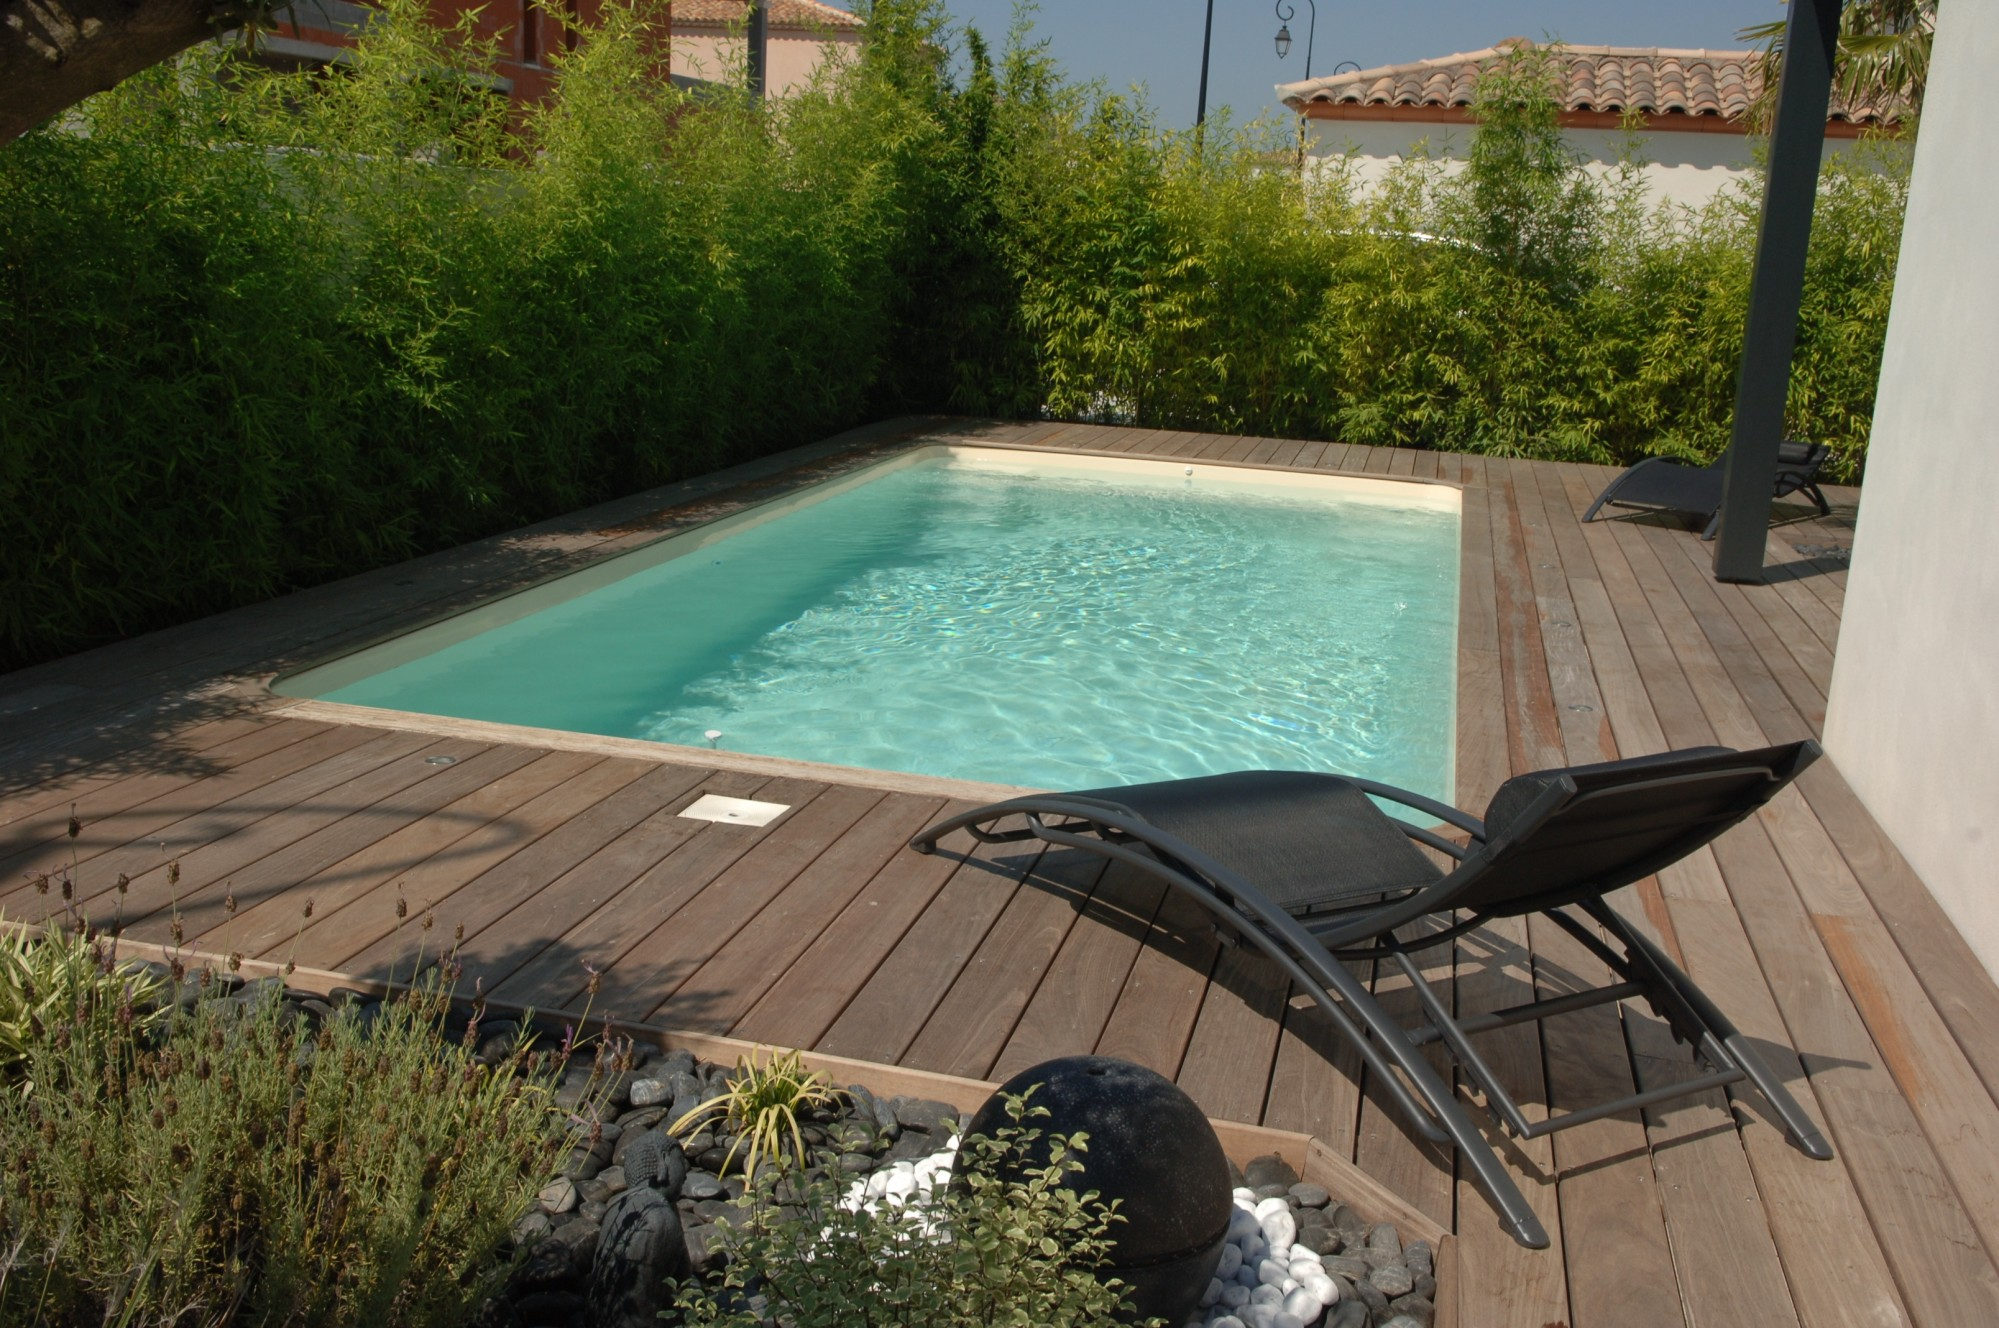 Piscine 7x3 stunning piscine 7x3 with piscine 7x3 for Piscine bois 7x3